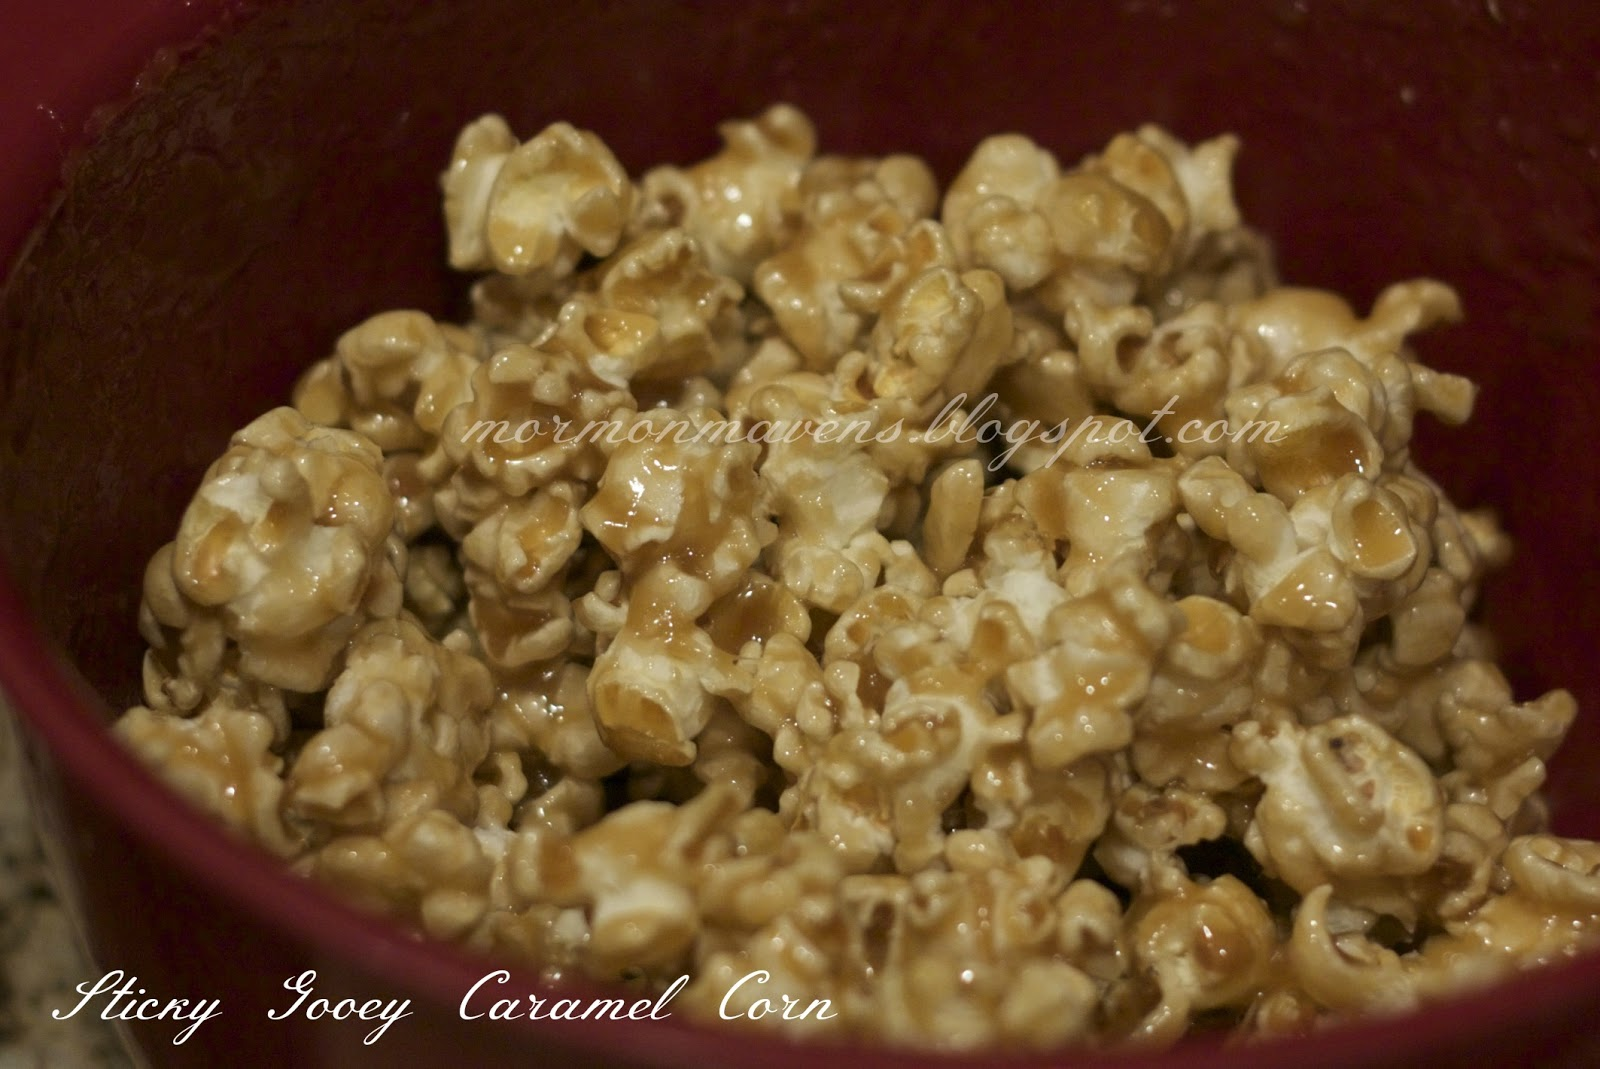 Mormon Mavens in the Kitchen: Sticky Gooey Caramel Corn